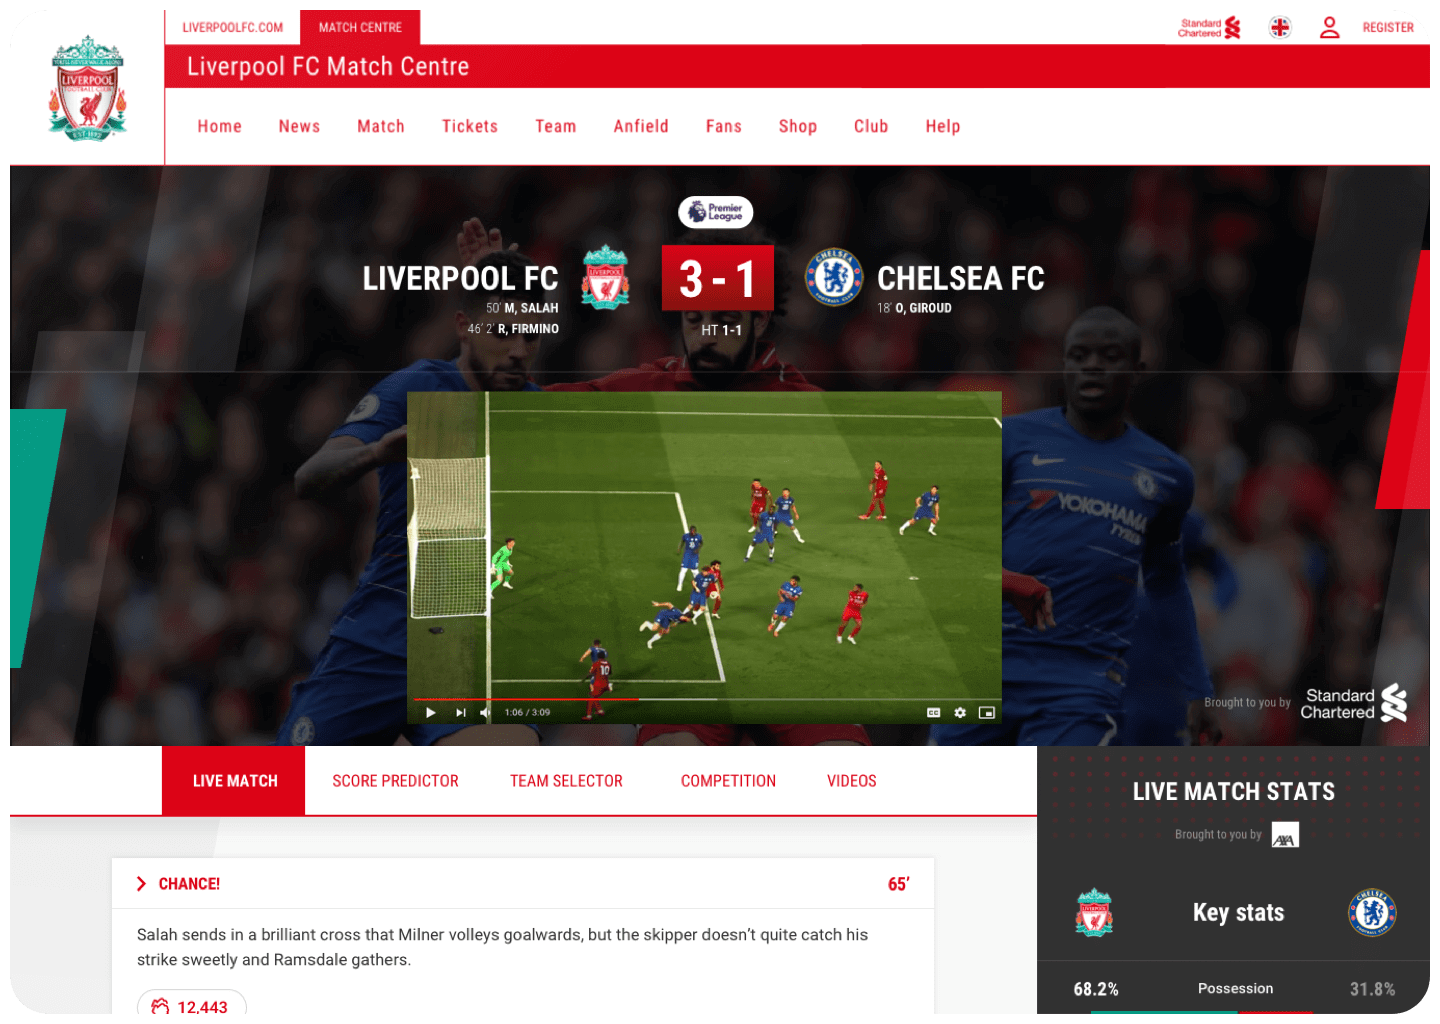 Liverpool FC app screen keeping fans updated throughout the match